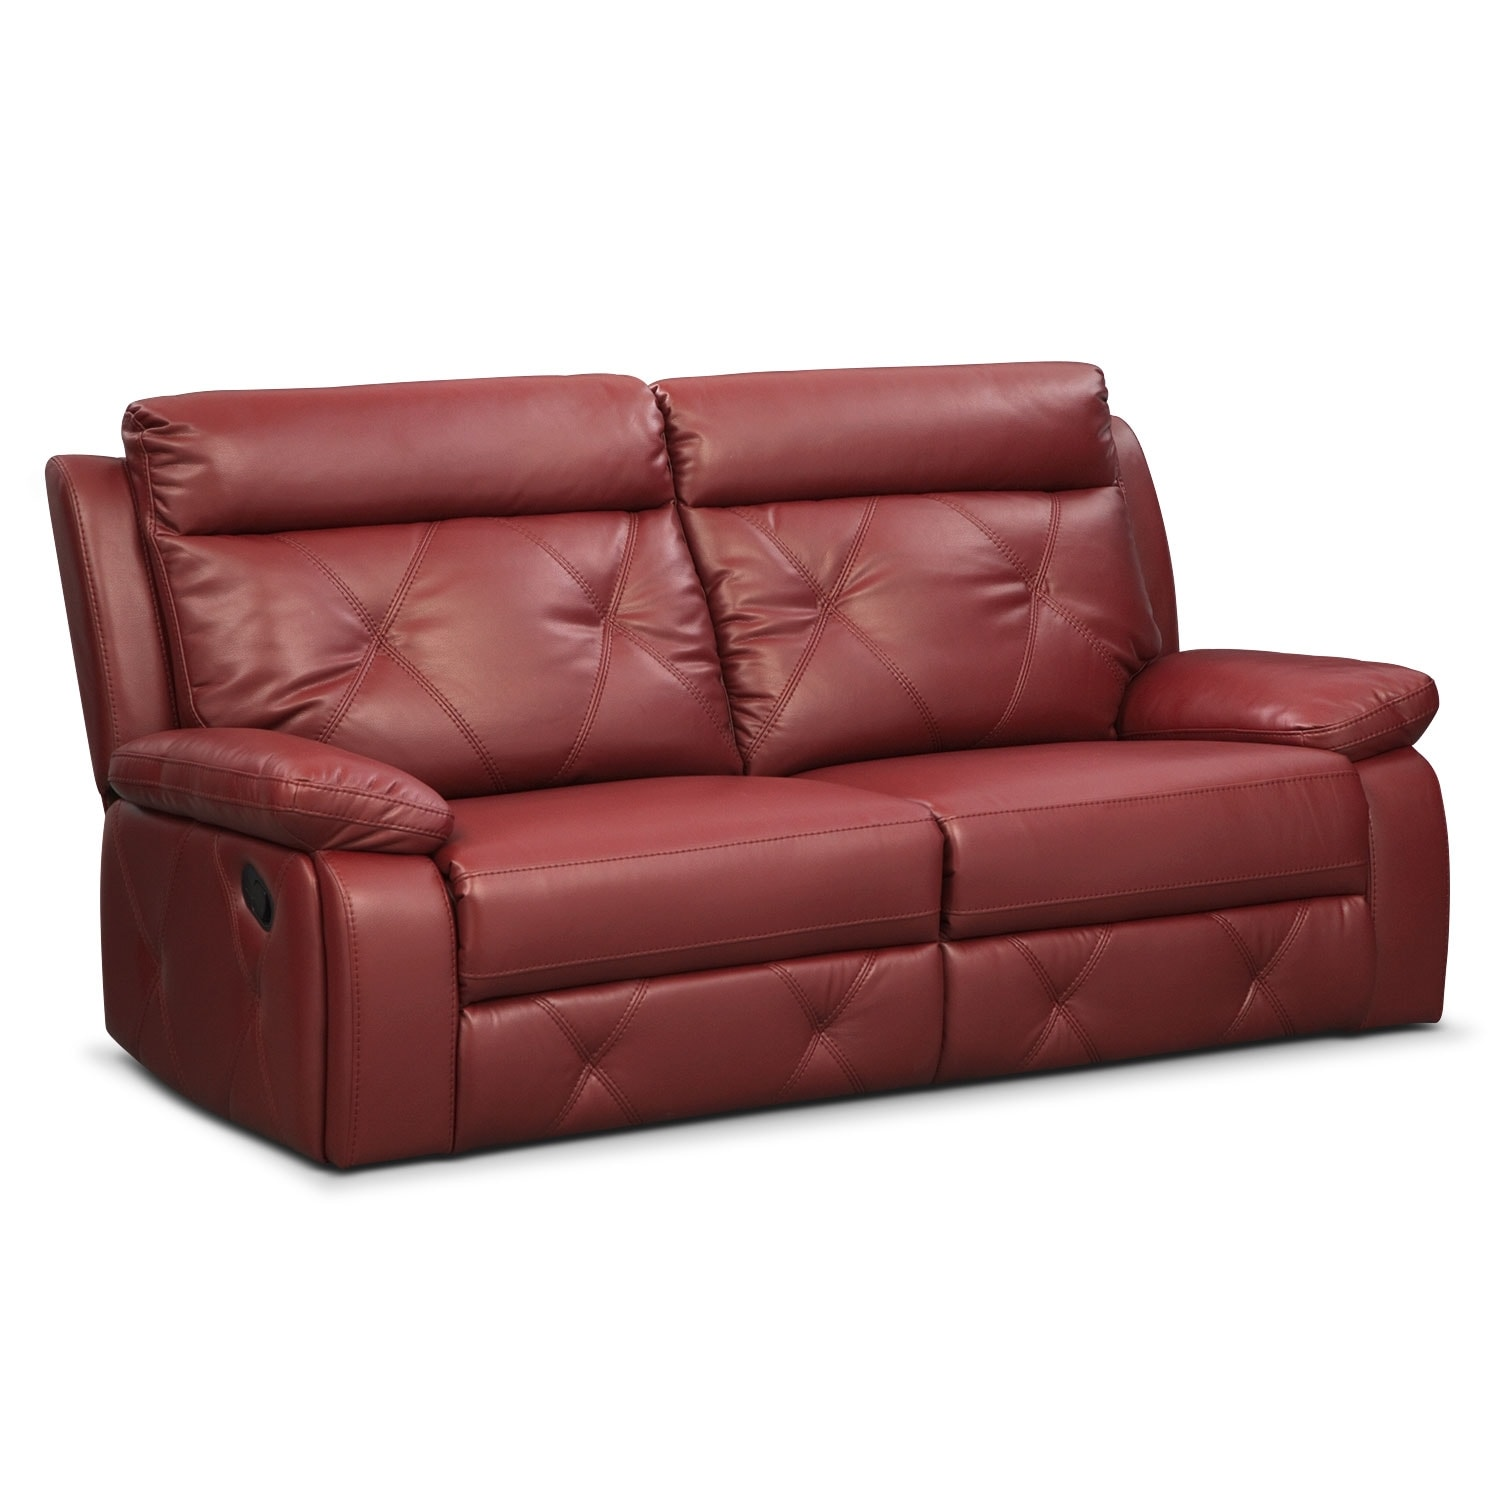 Living Room Furniture - Dante Red 2 Pc. Reclining Sofa